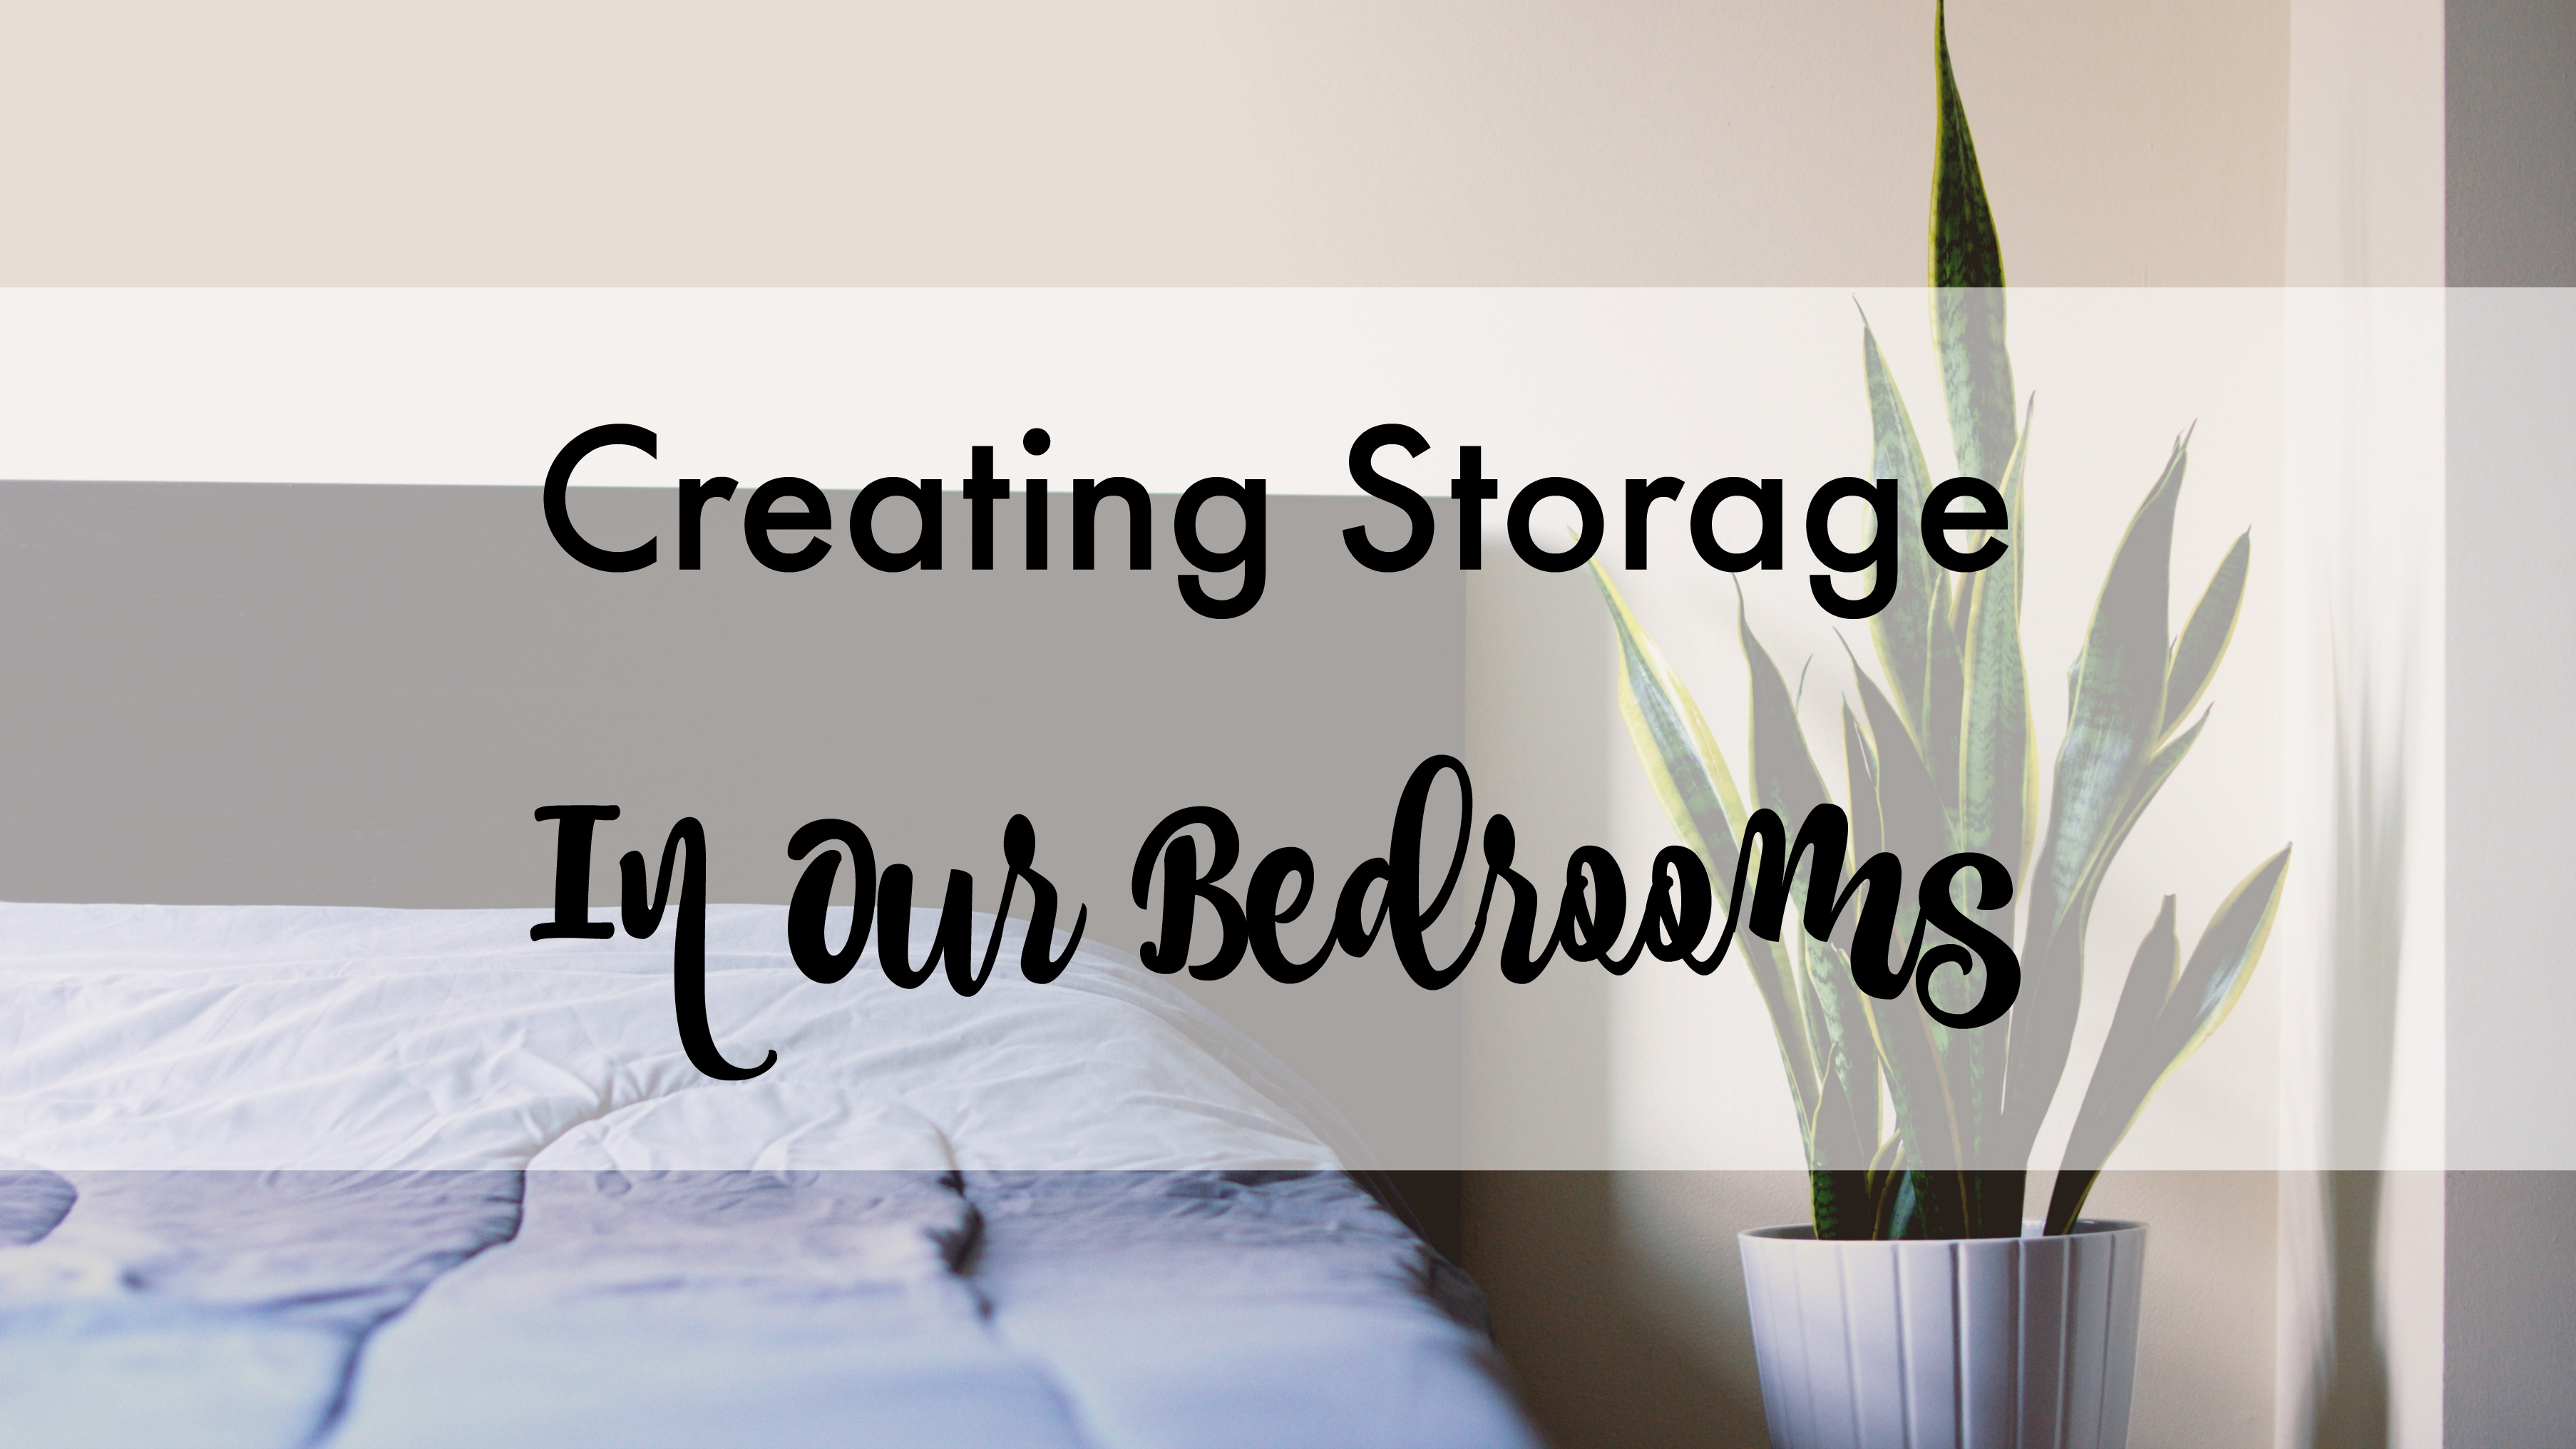 creating storage title